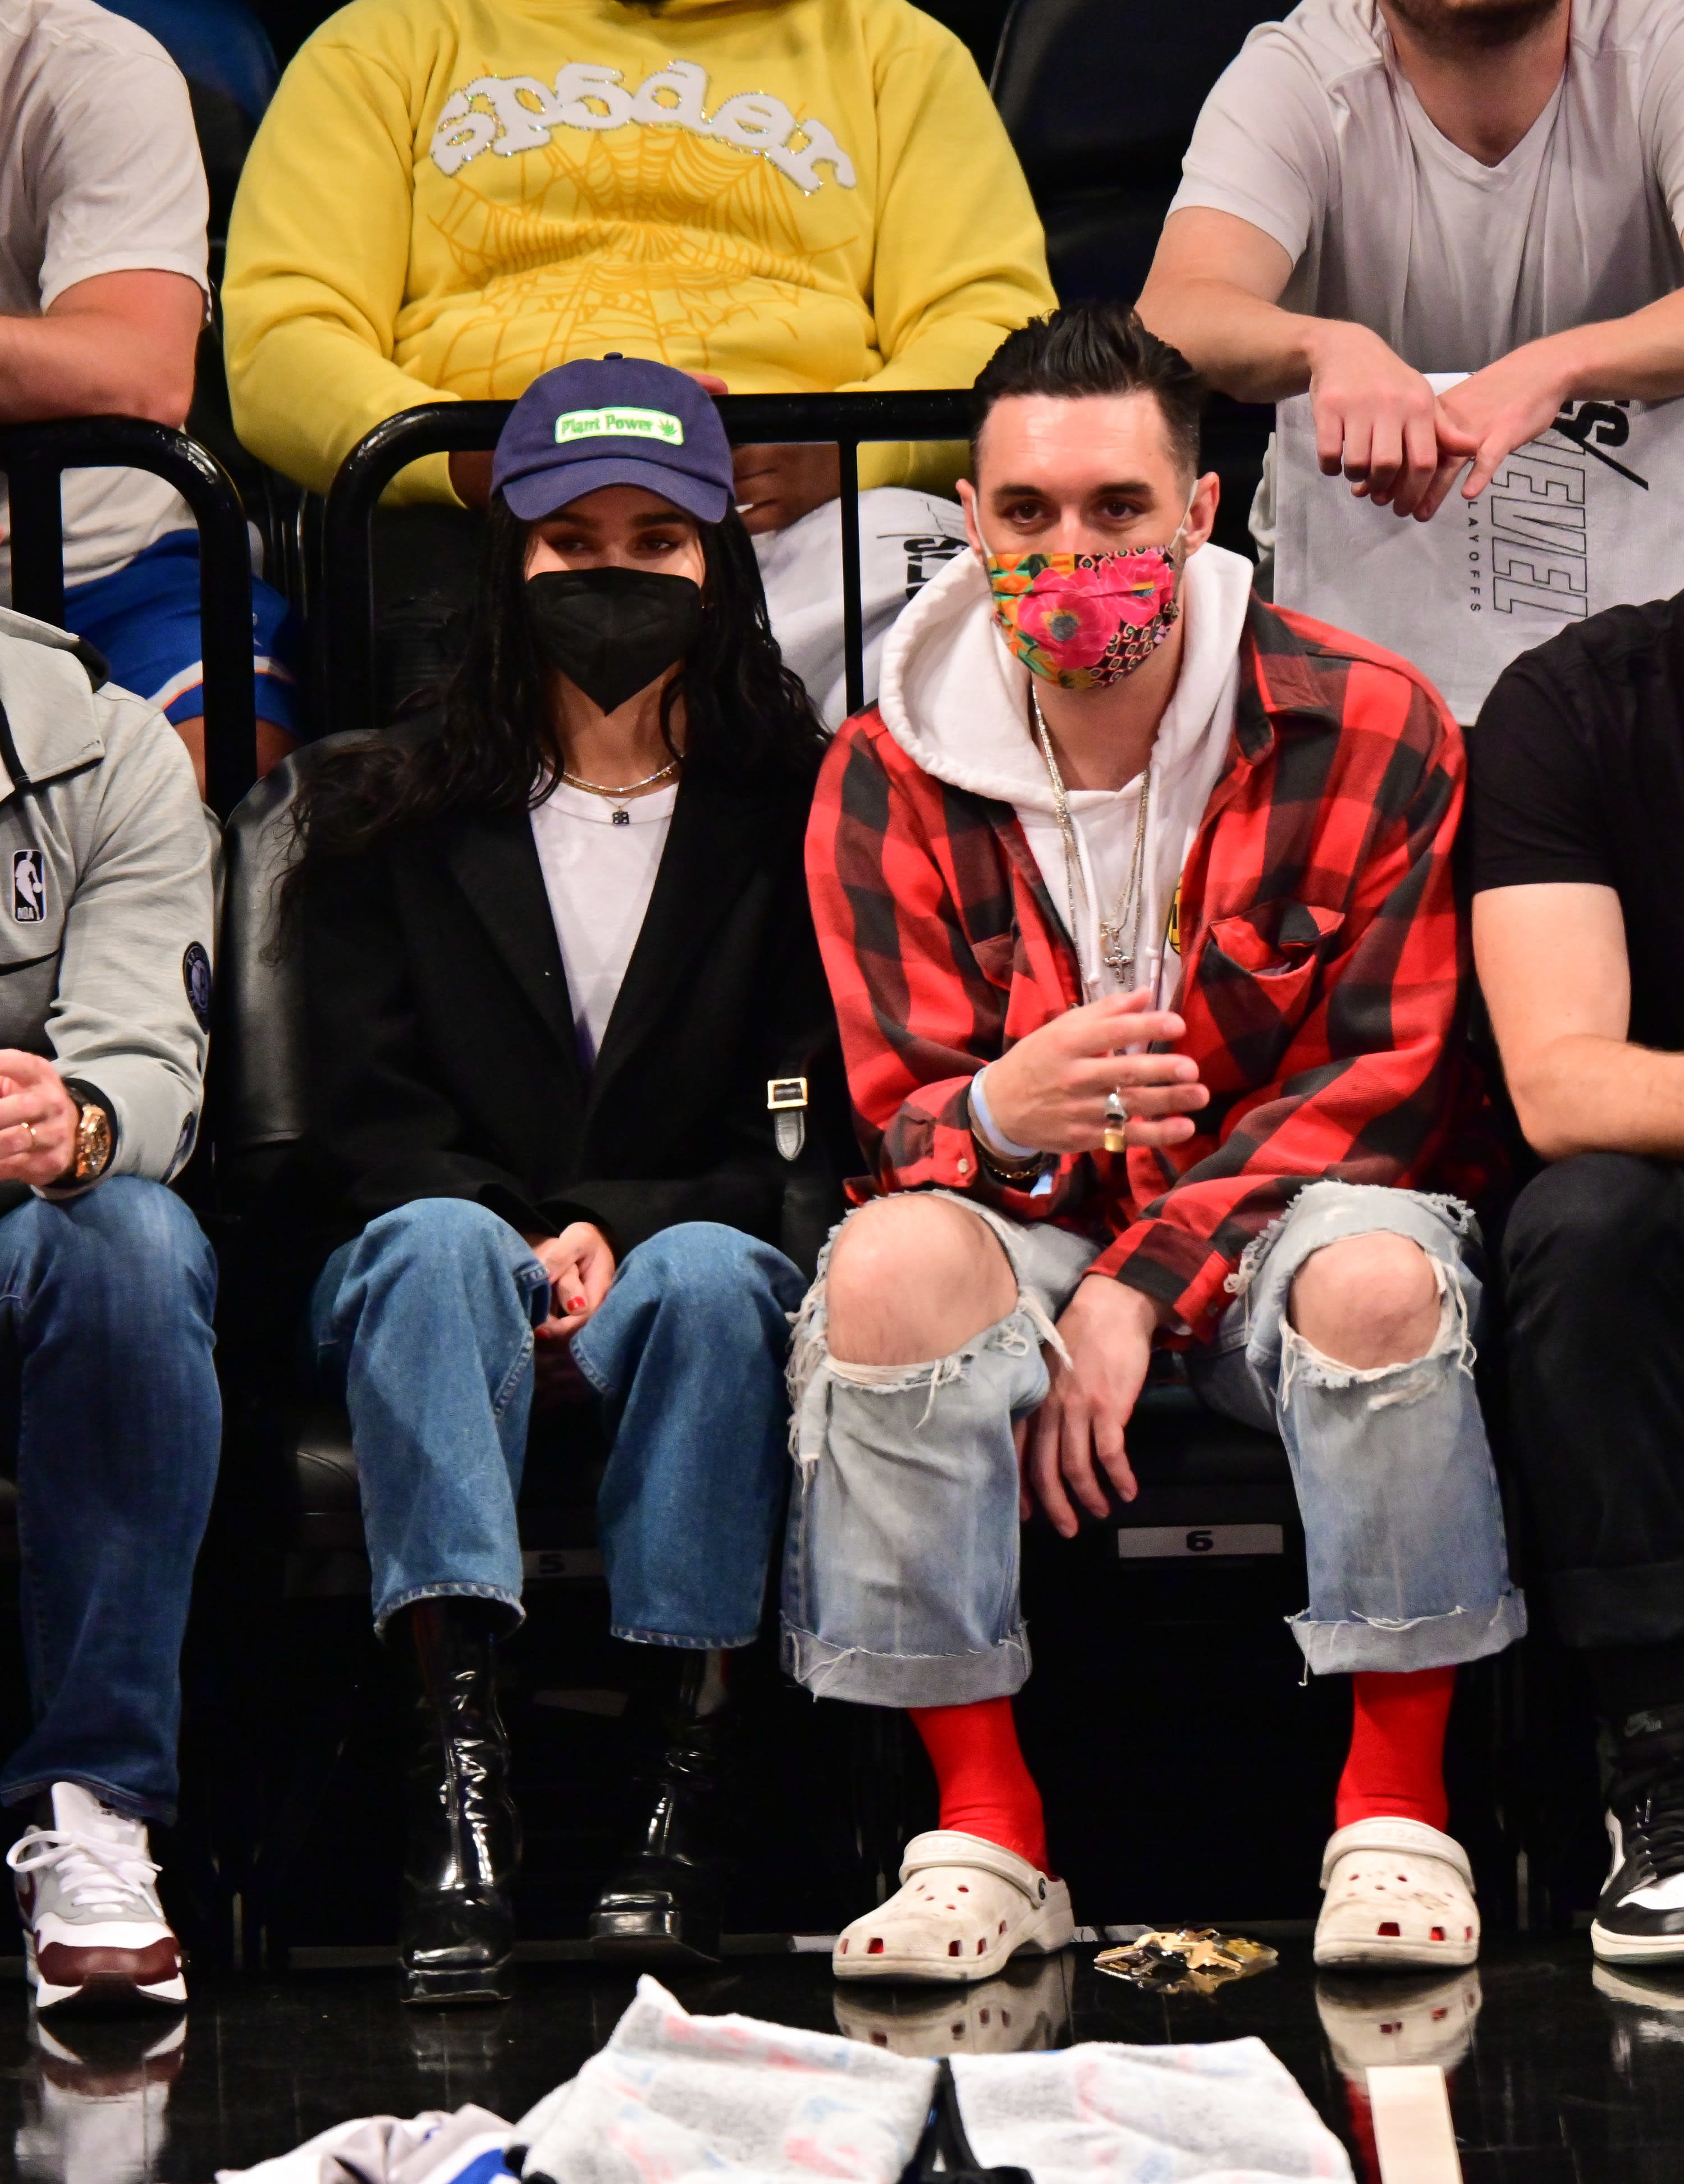 Zoe sitting courtside in jeans boots t-shirt cardi hat and mask